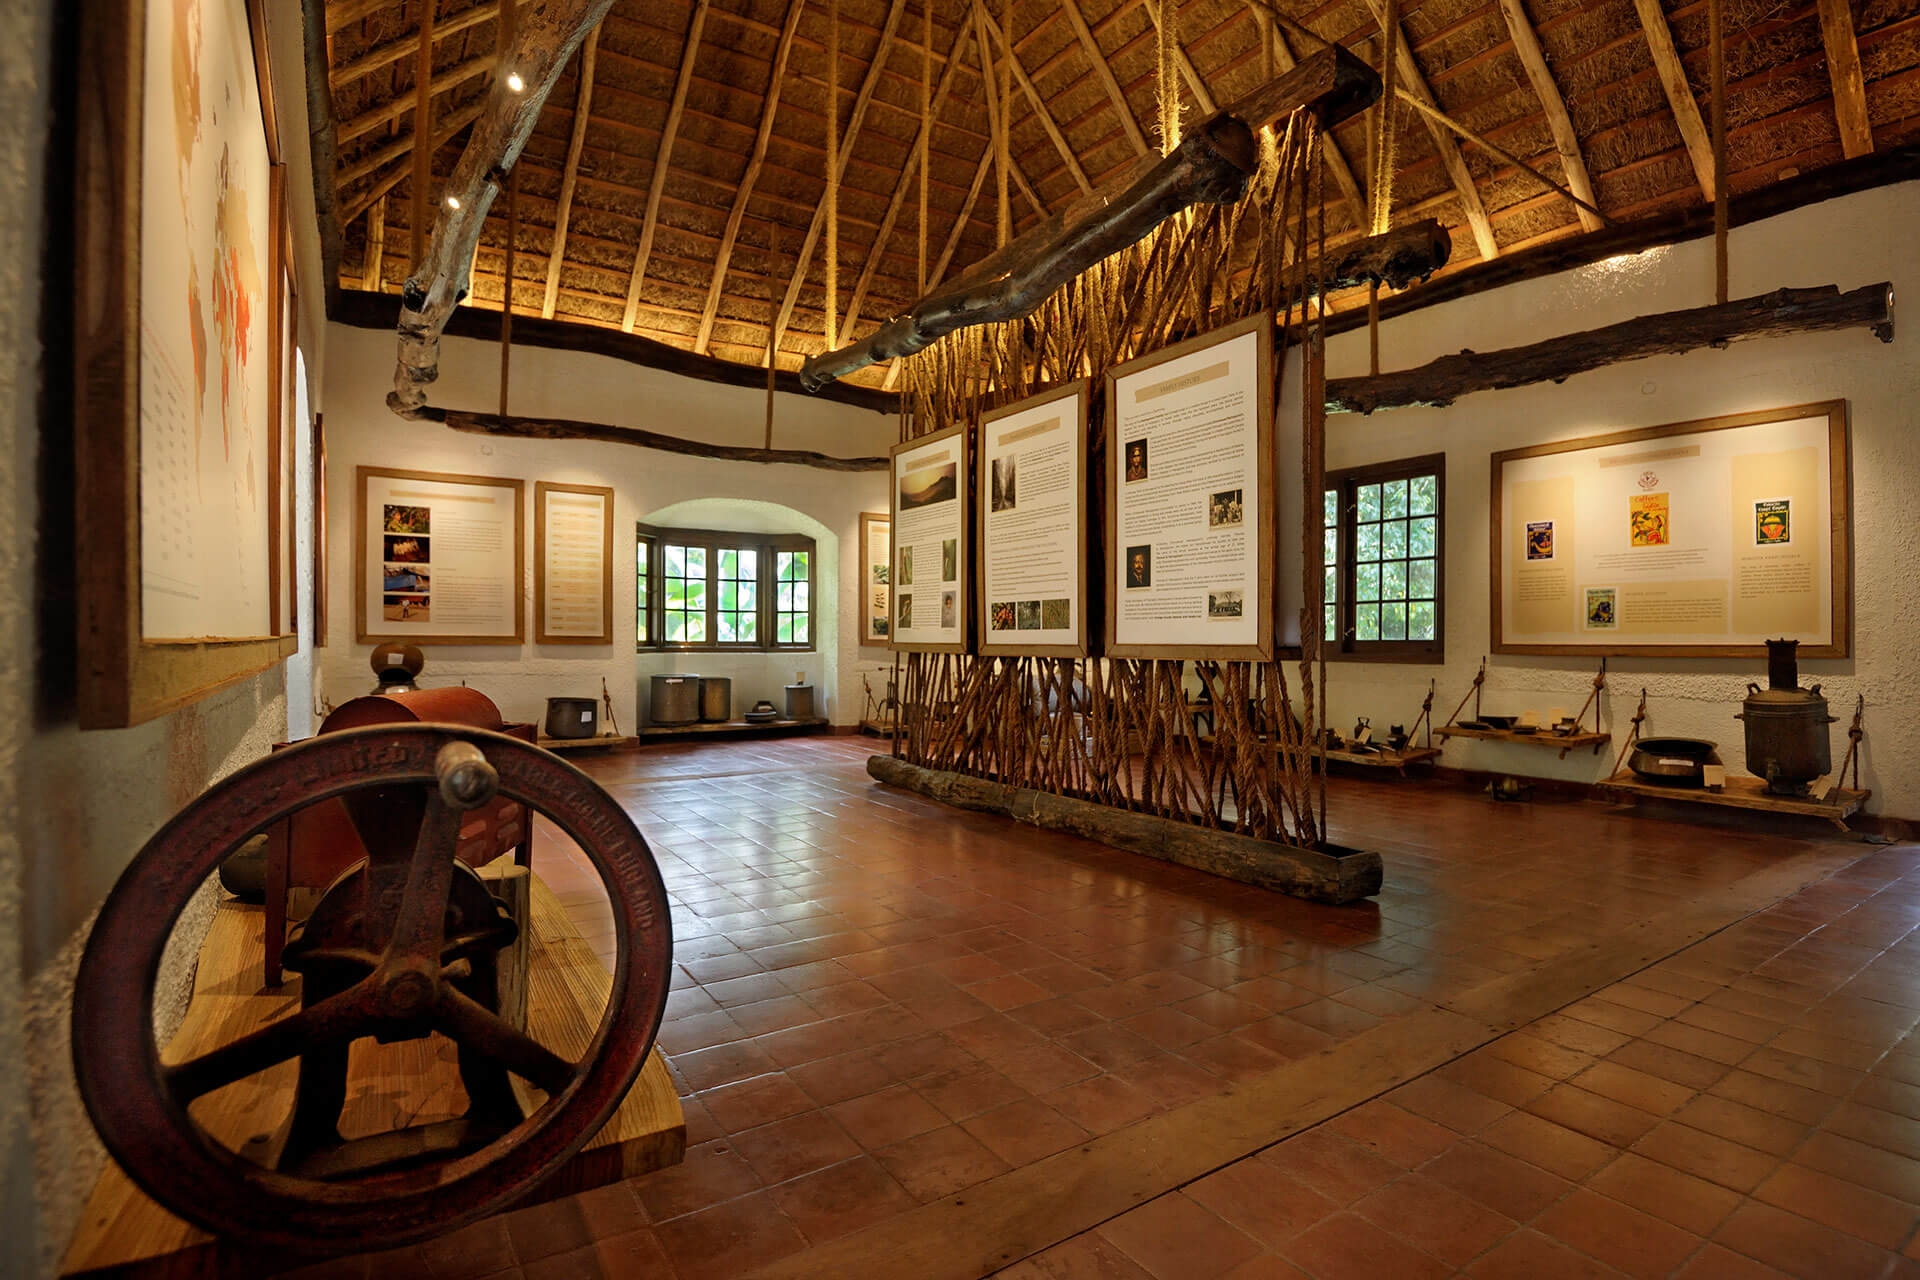 Interiors of the Sidapur Museum of Coffee & Culture